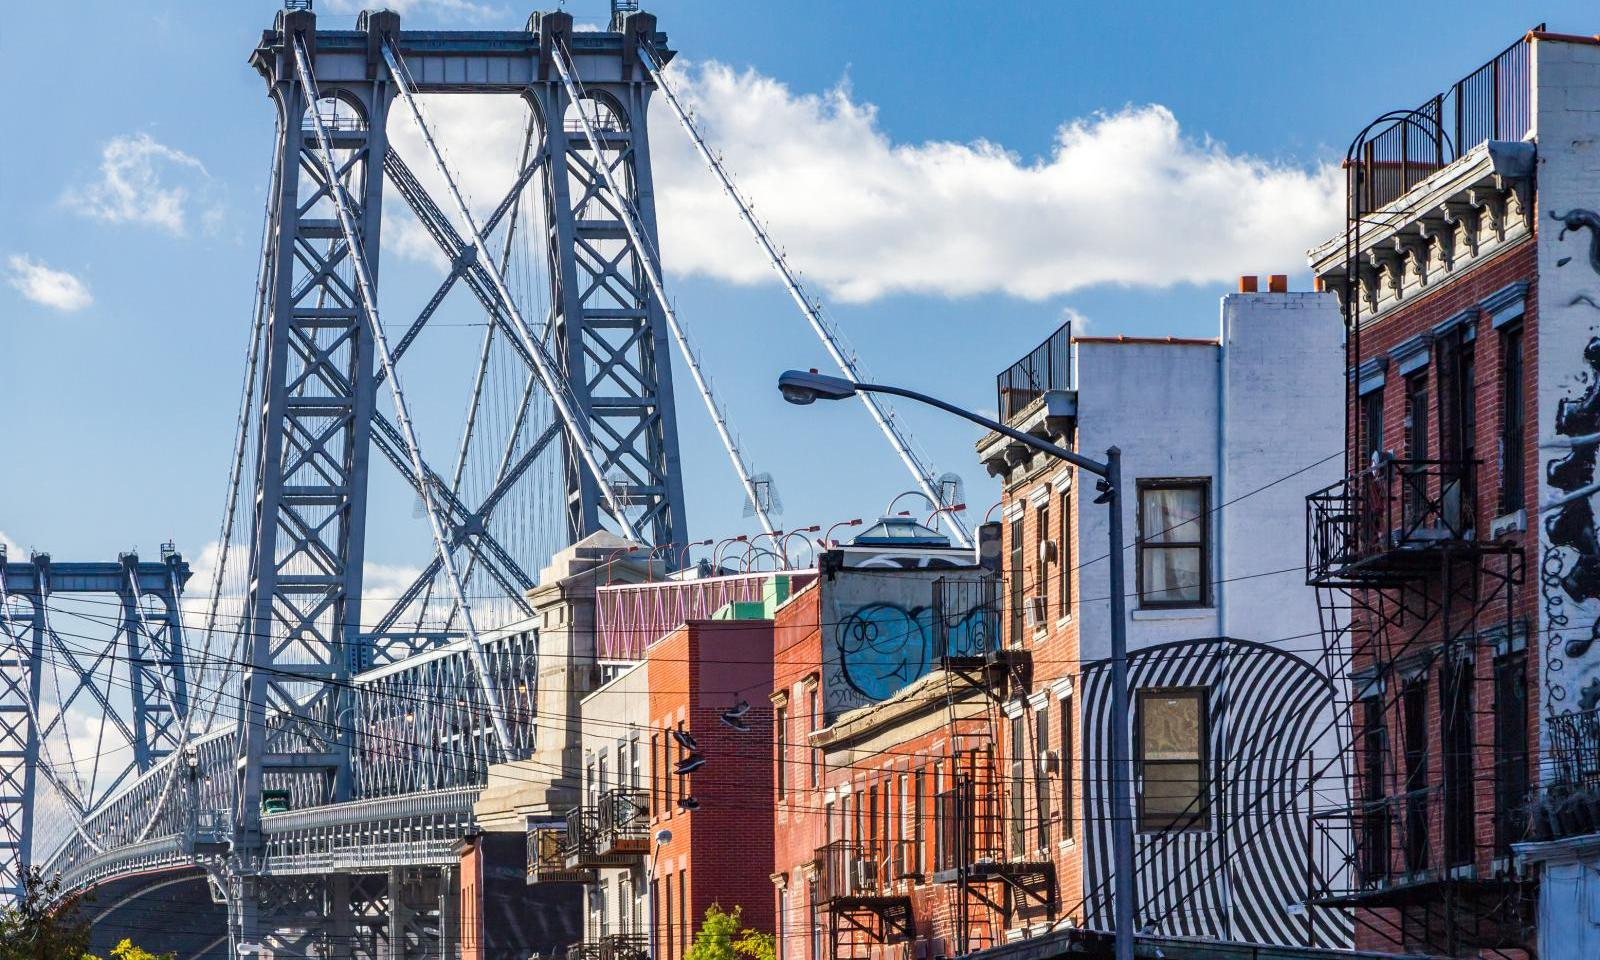 Things to do in williamsburg brooklyn insider guide for Things to do in williamsburg brooklyn